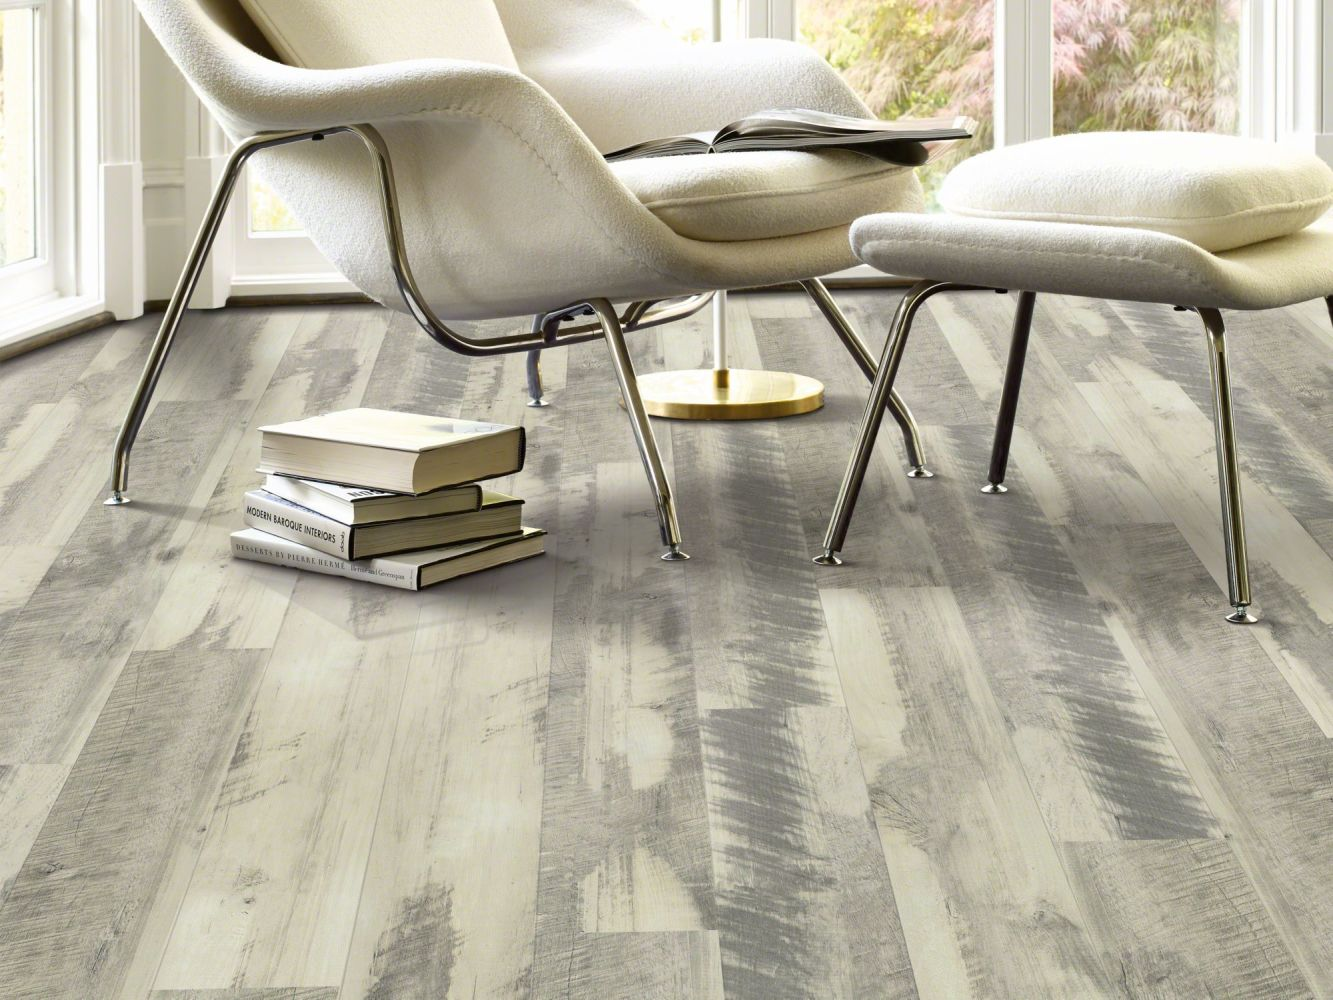 Shaw Floors Vinyl Residential Endura 512c Plus Gray Barnwood 00142_0736V